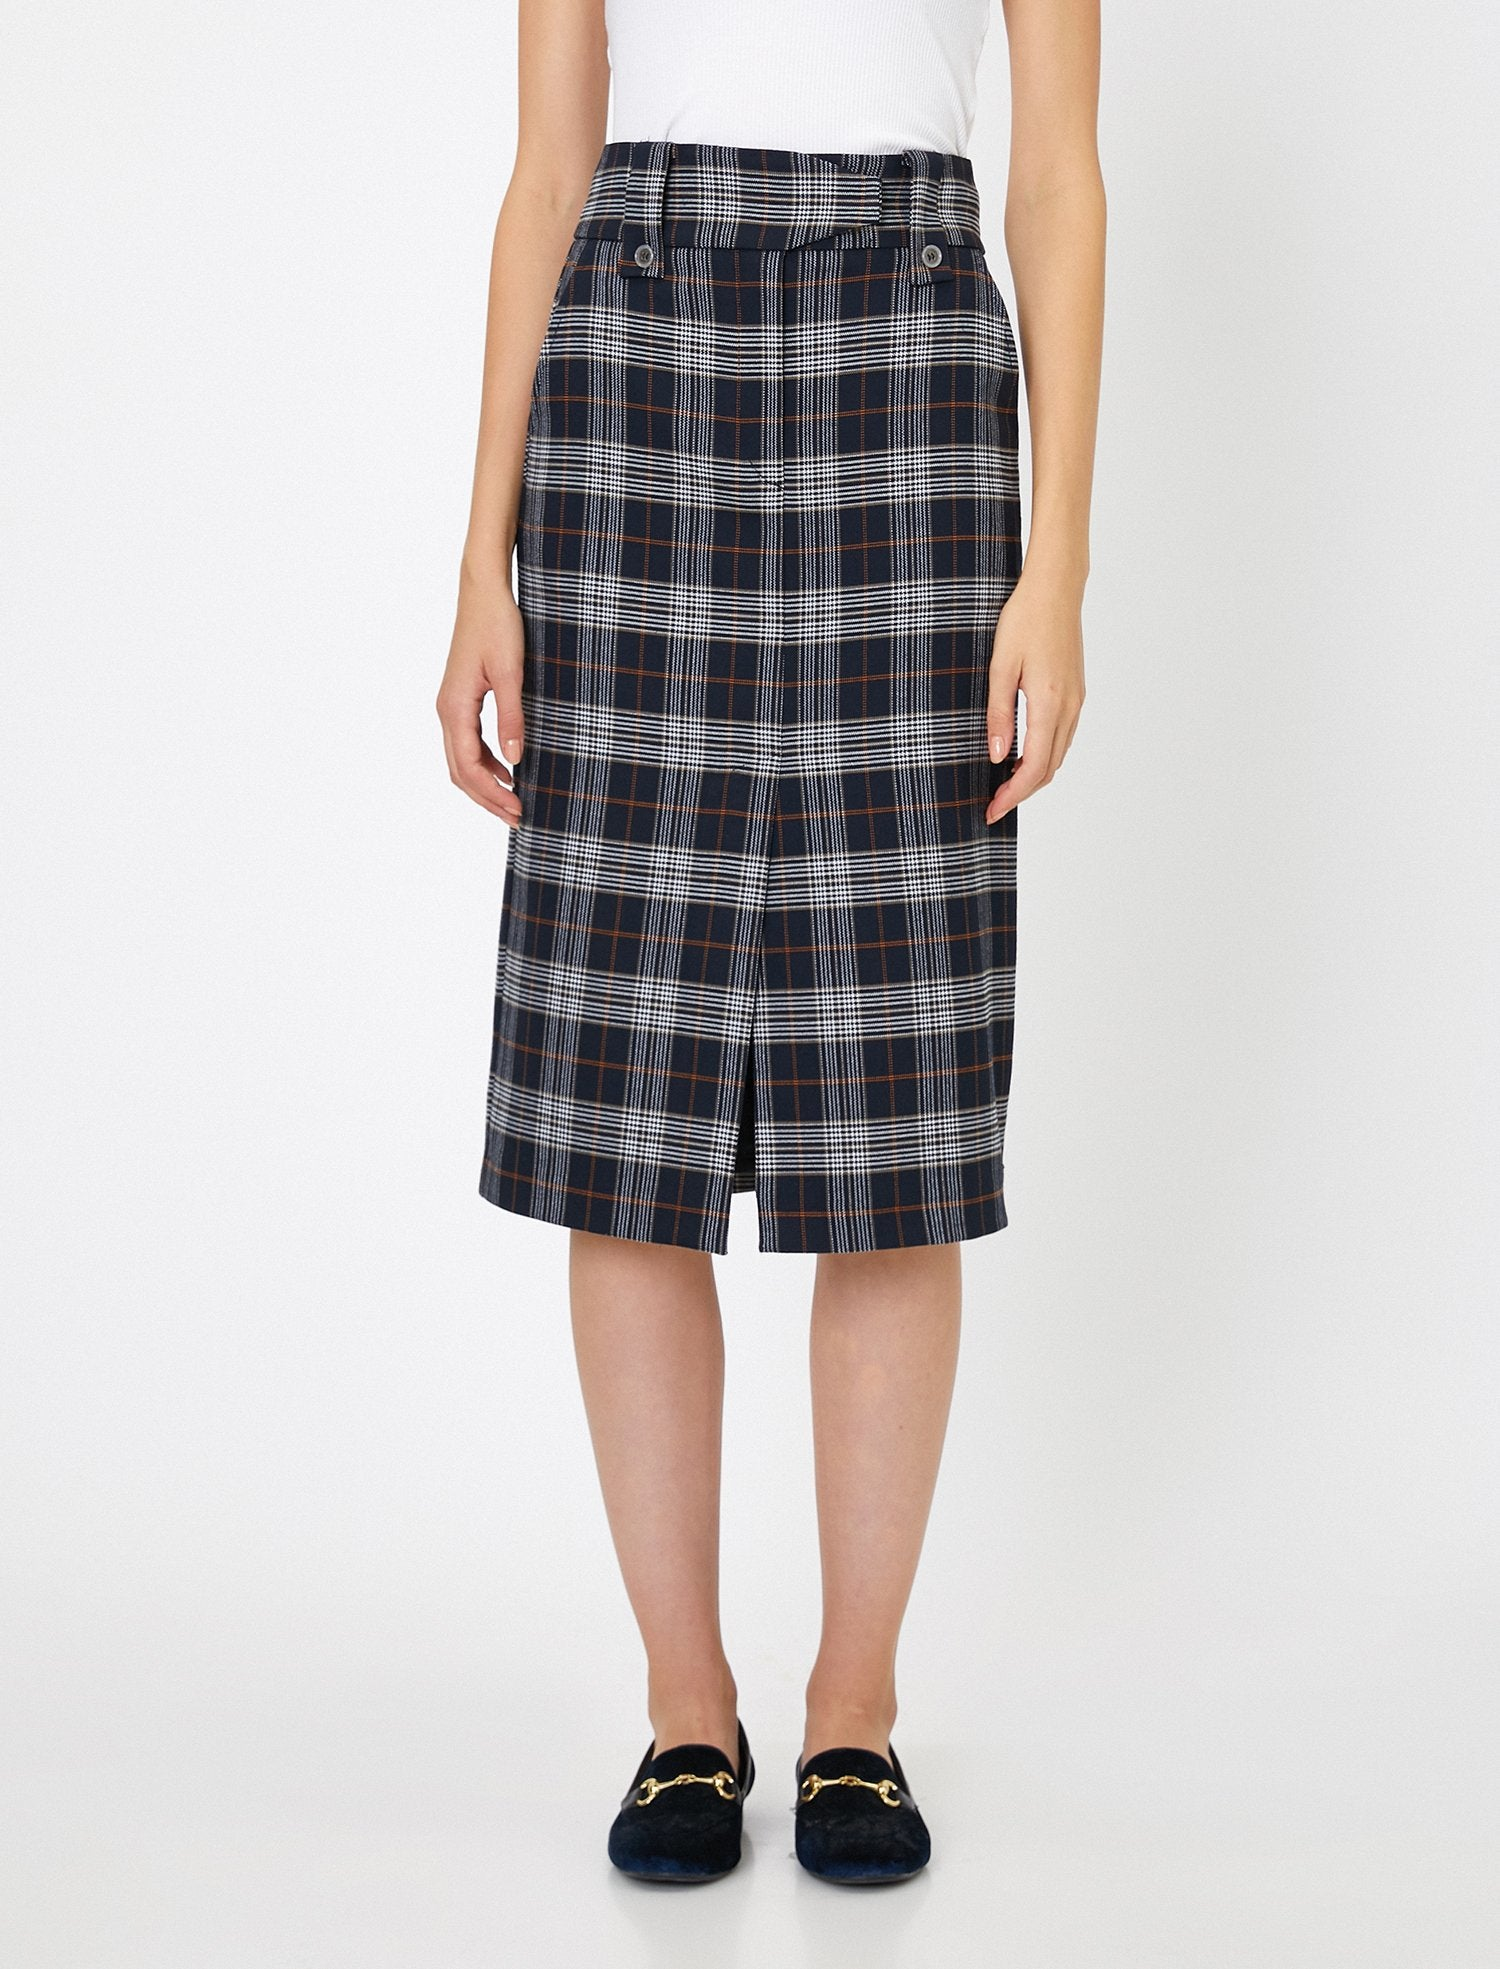 Plaid Pencil Skirt in Navy